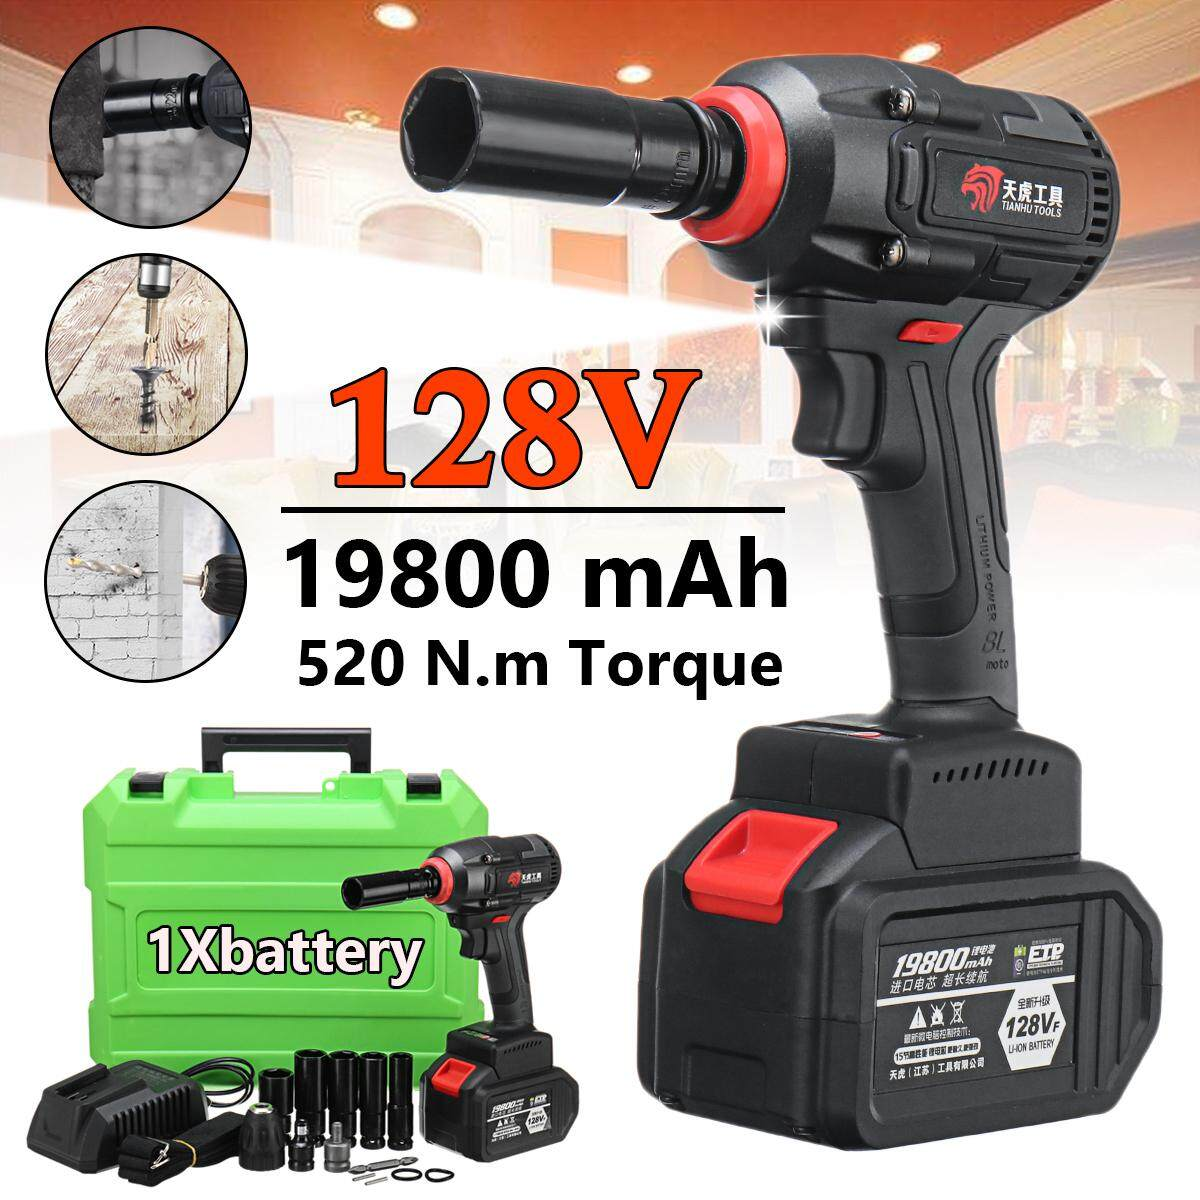 128V Heavy Duty Cordless Impact Wrench Drill Driver Motor Torque Battery